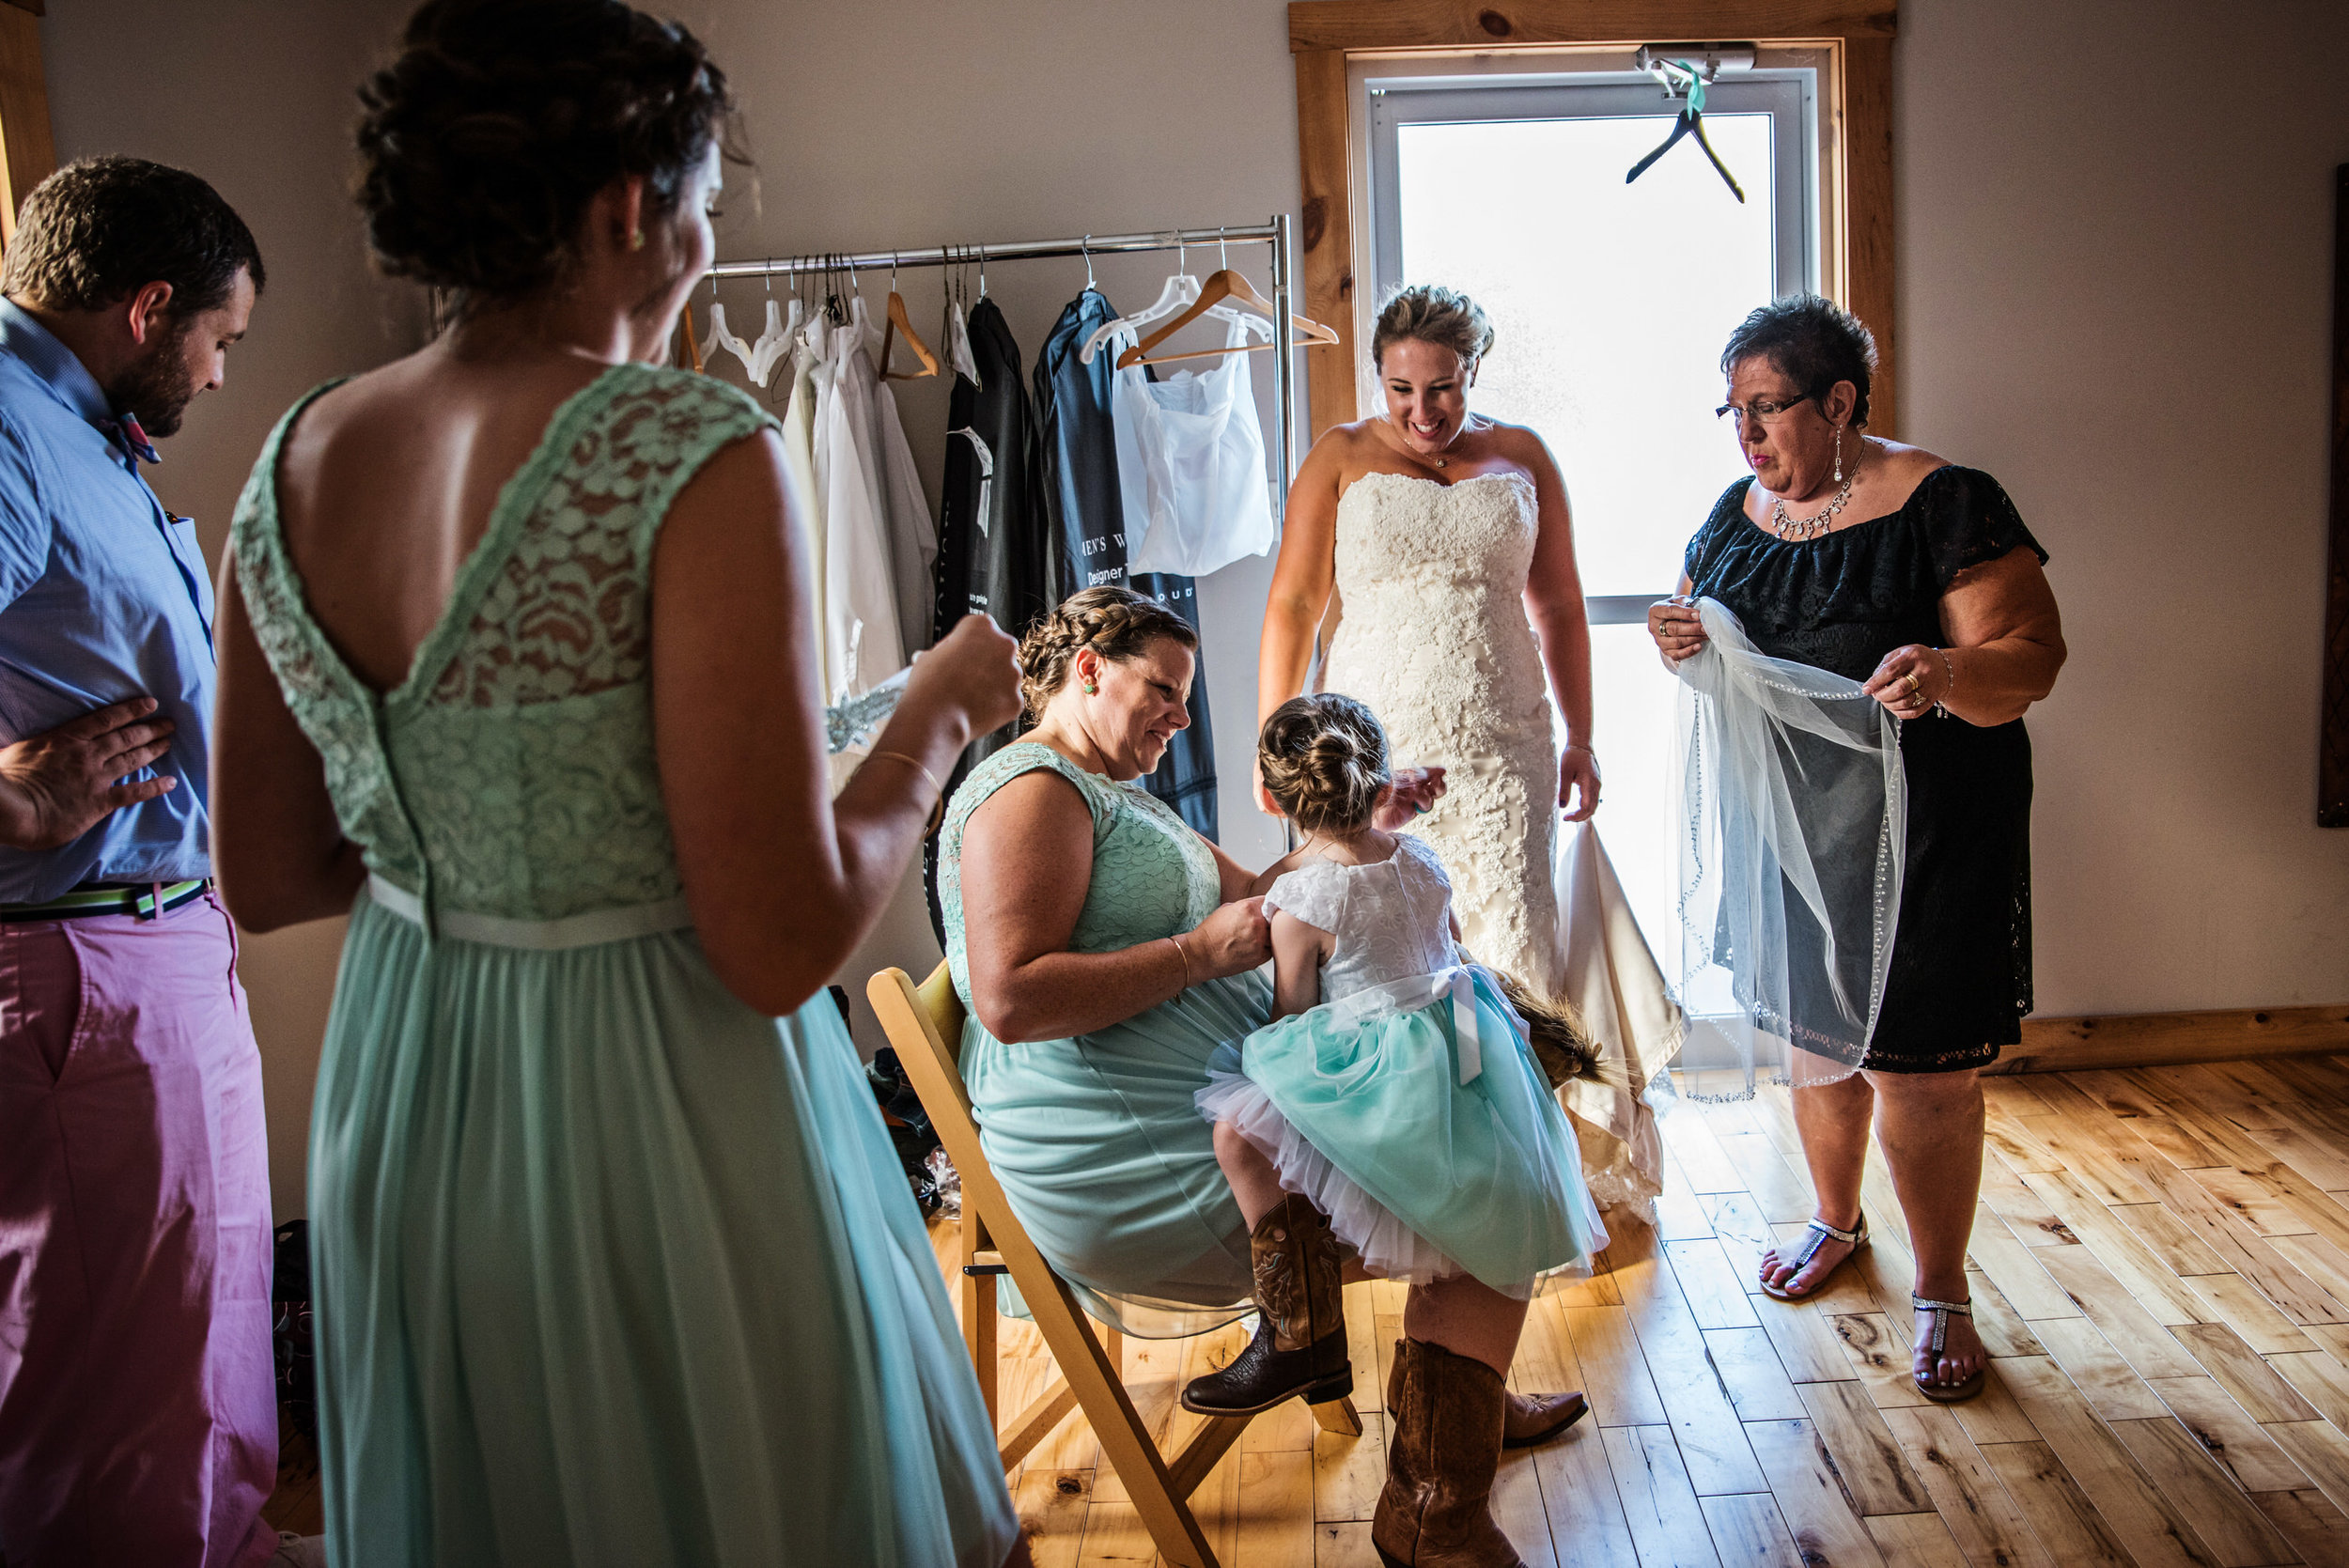 LiganoreWineryWedding-Amber&Andy-GettingReady-222.jpg